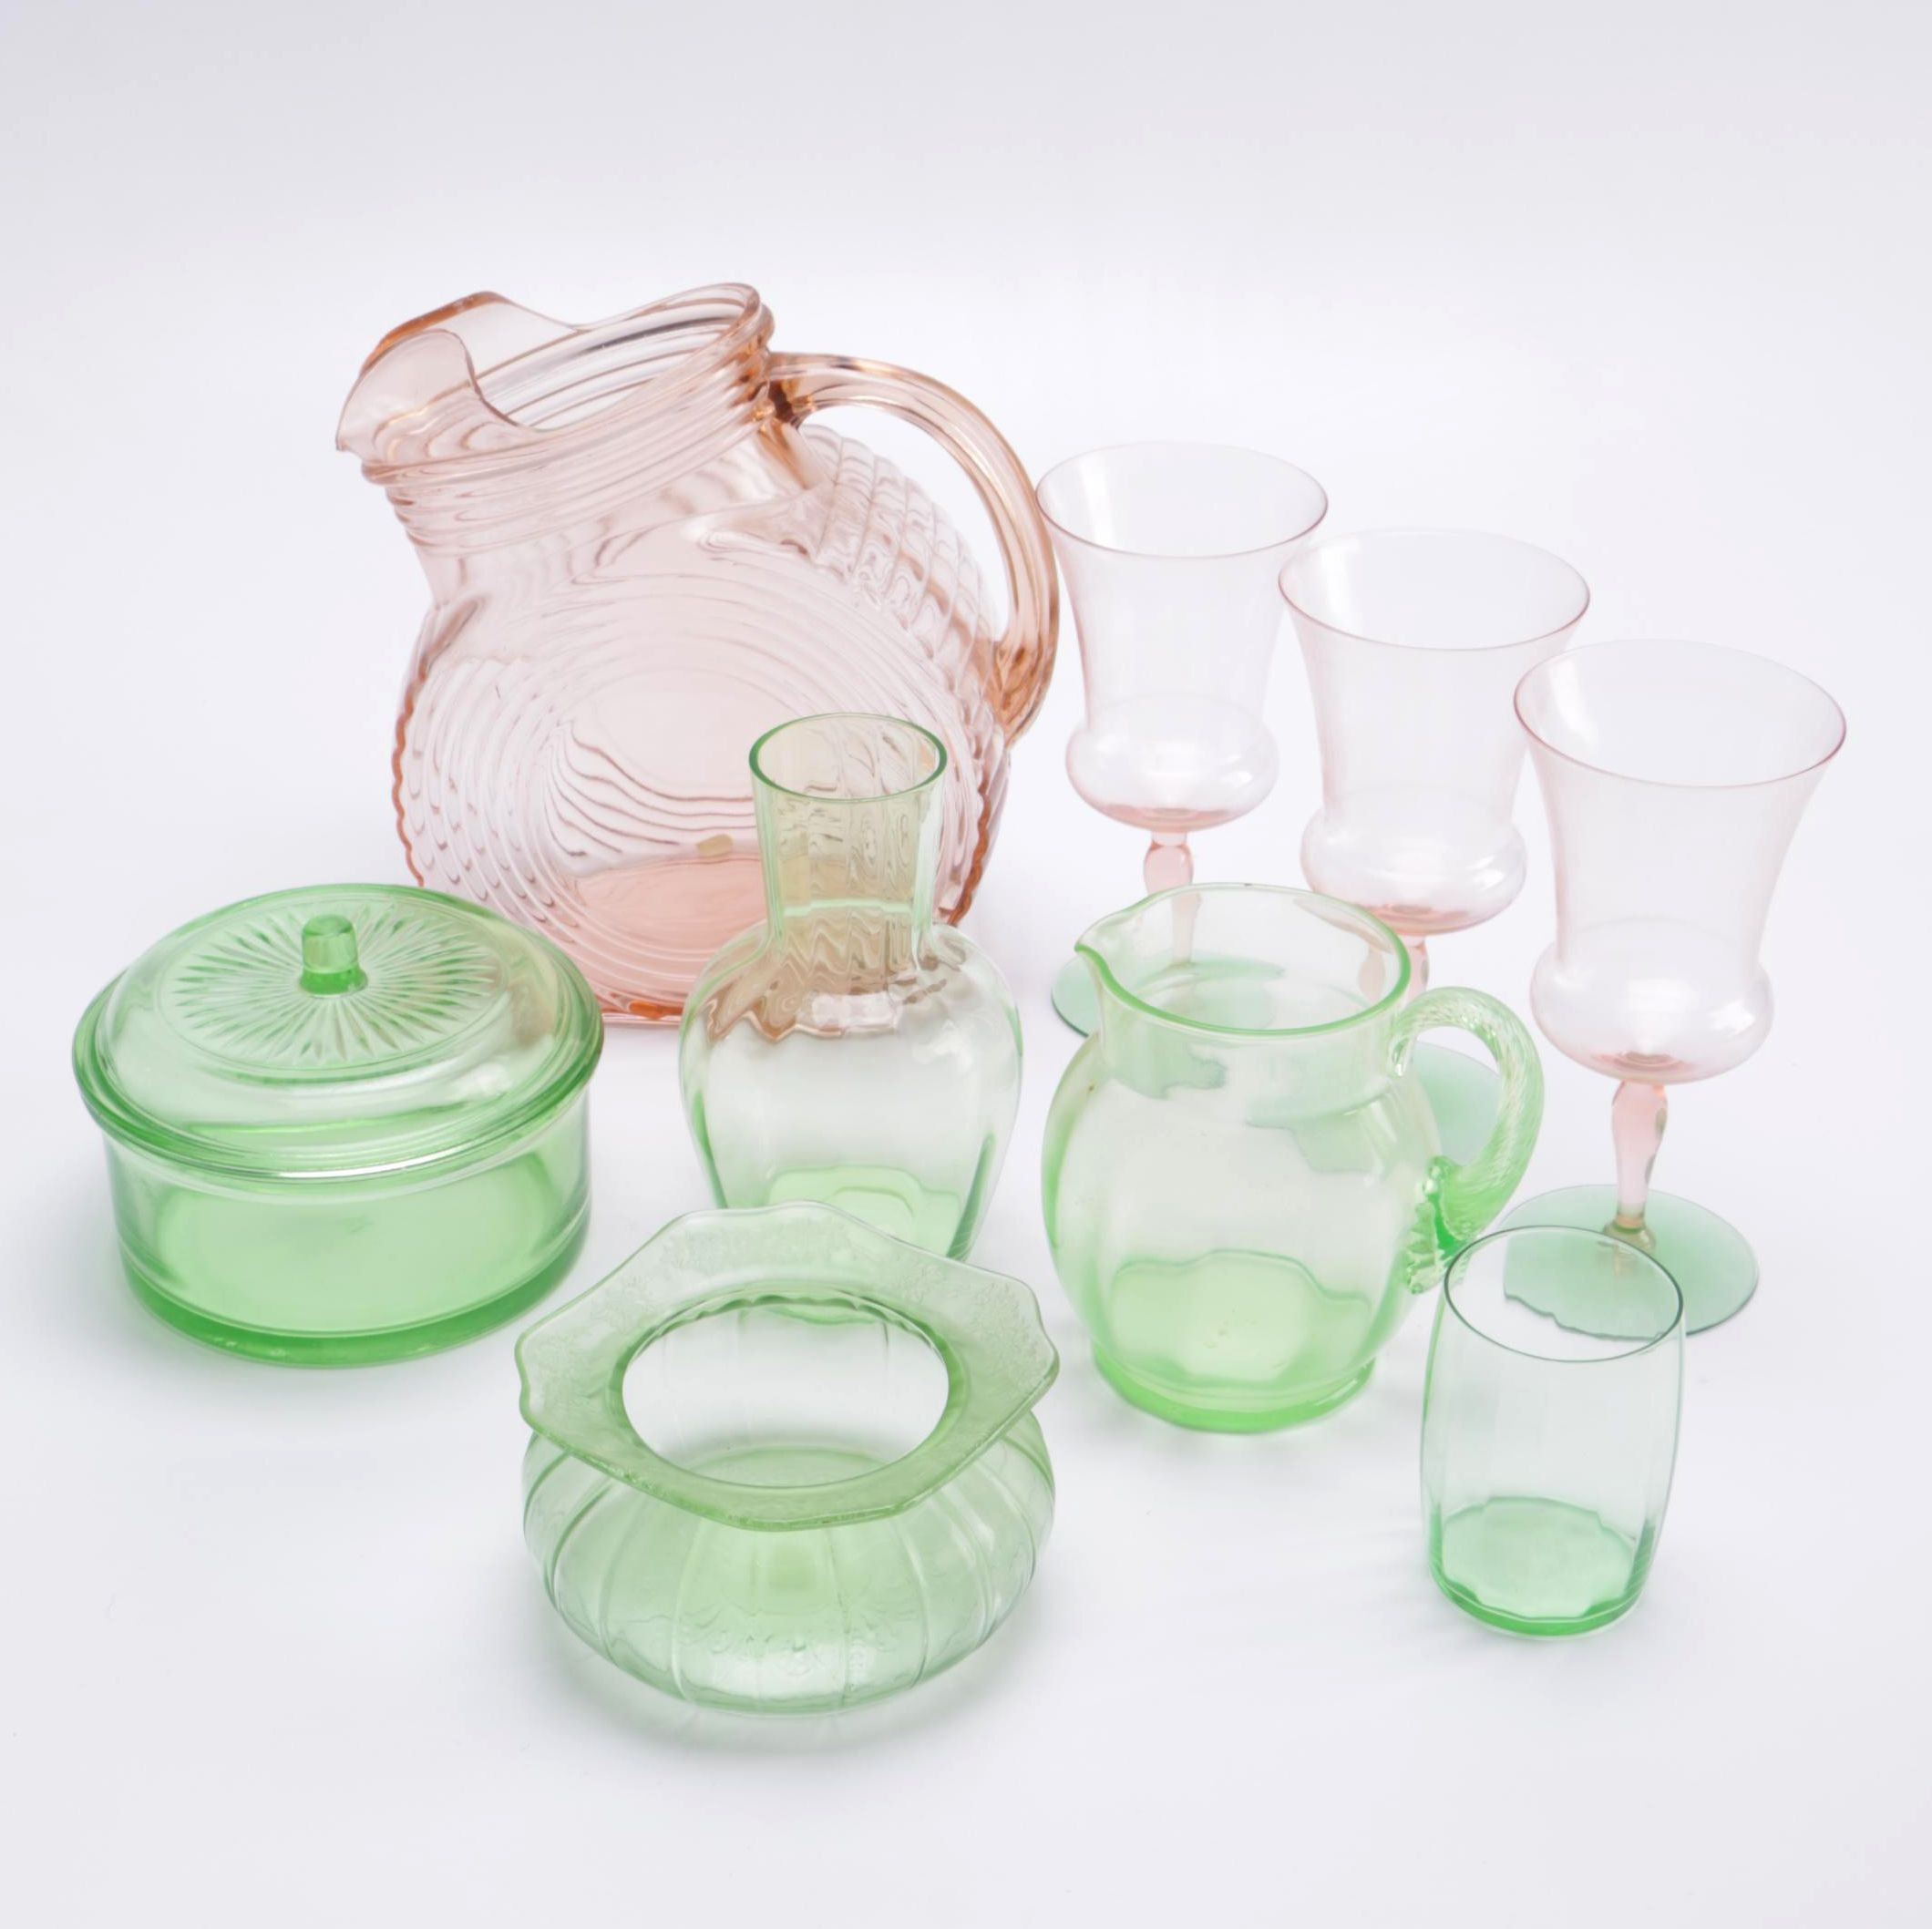 Assortment of Pink and Green Depression Glass